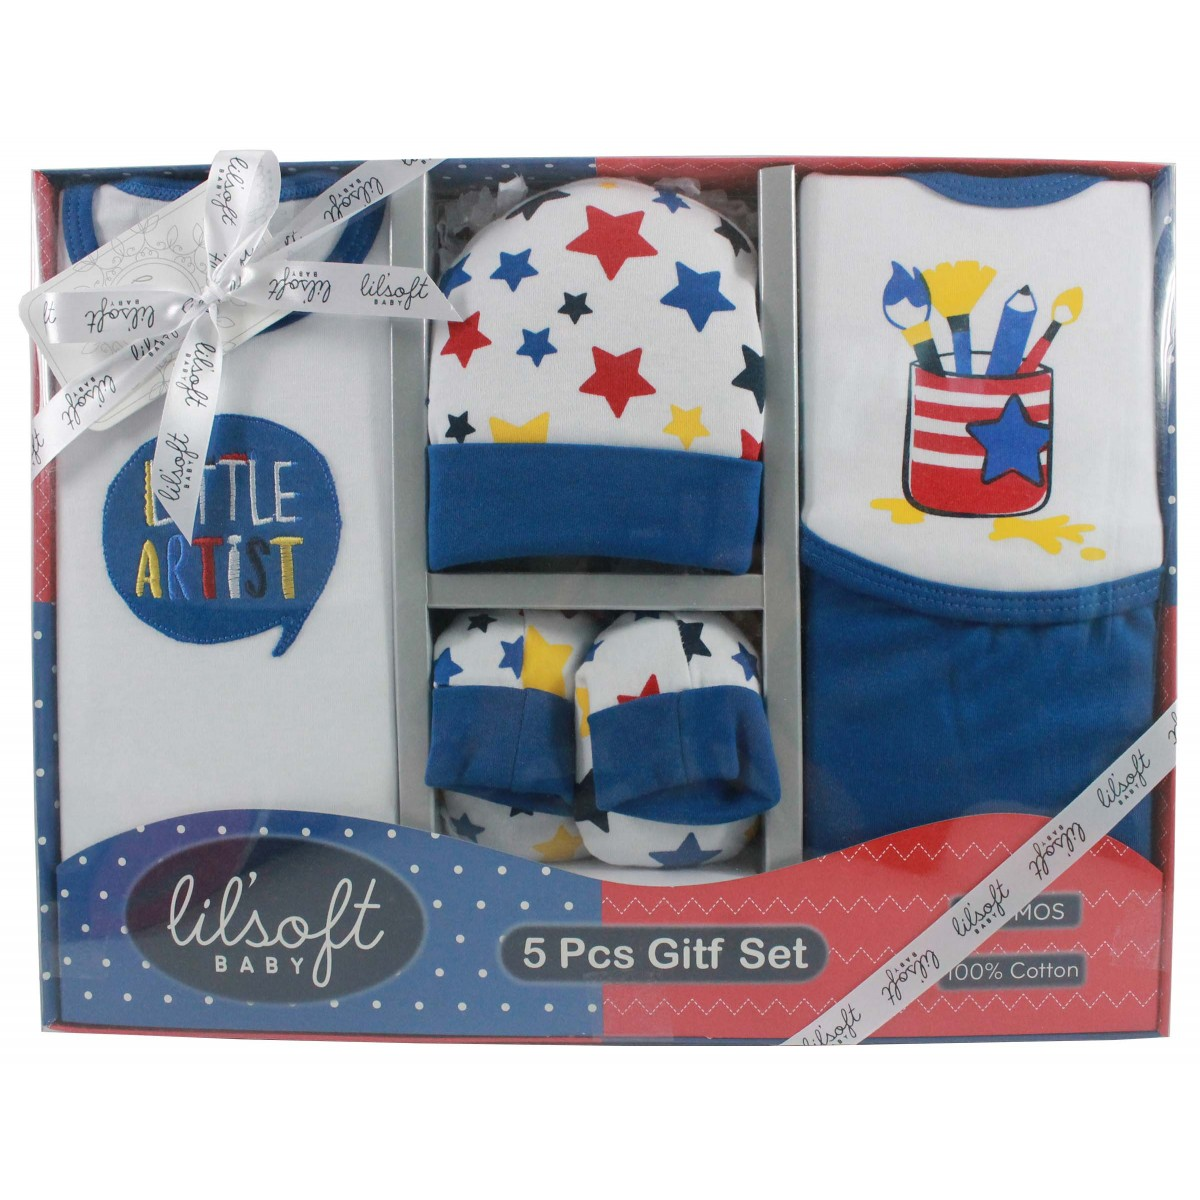 Baby Gift Set Kl : Baby tank top pieces gift set for sets